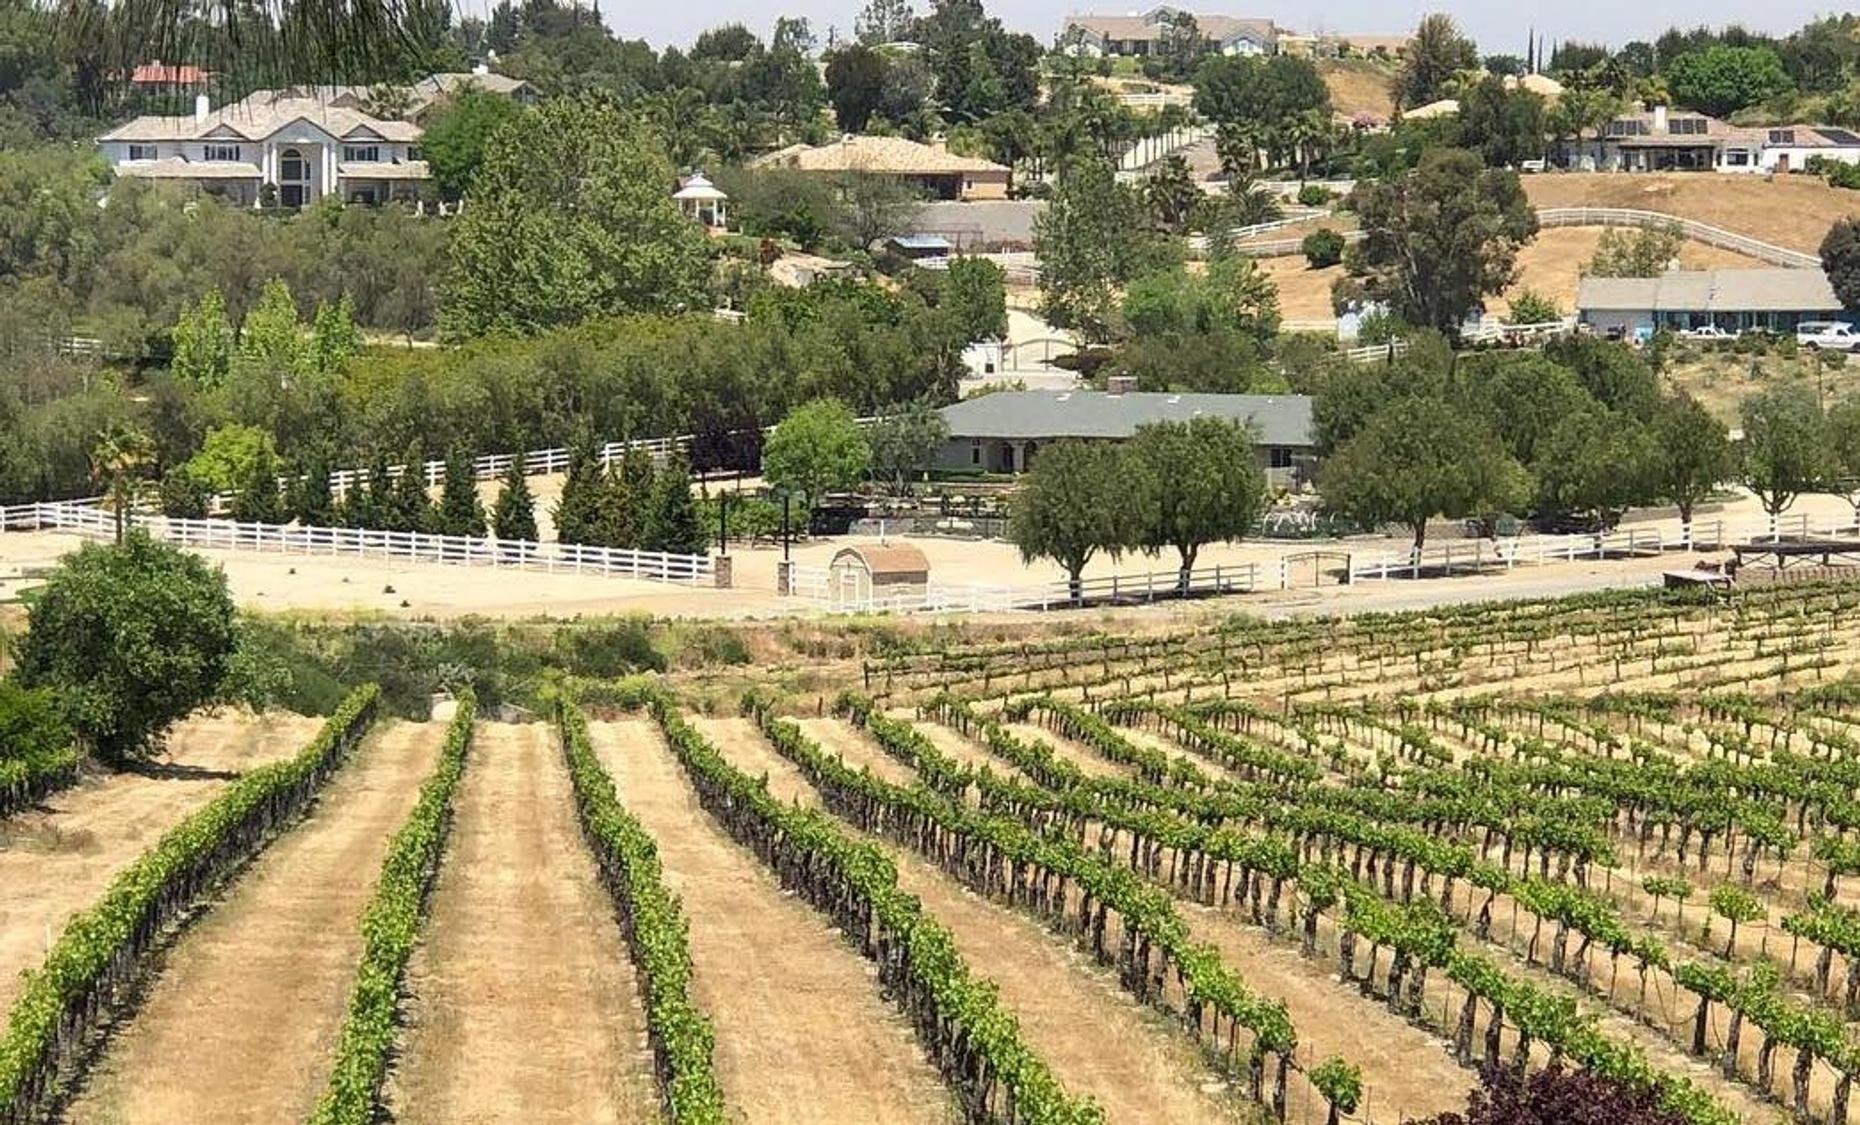 Half-Day Afternoon Wine Tour in Temecula Valley